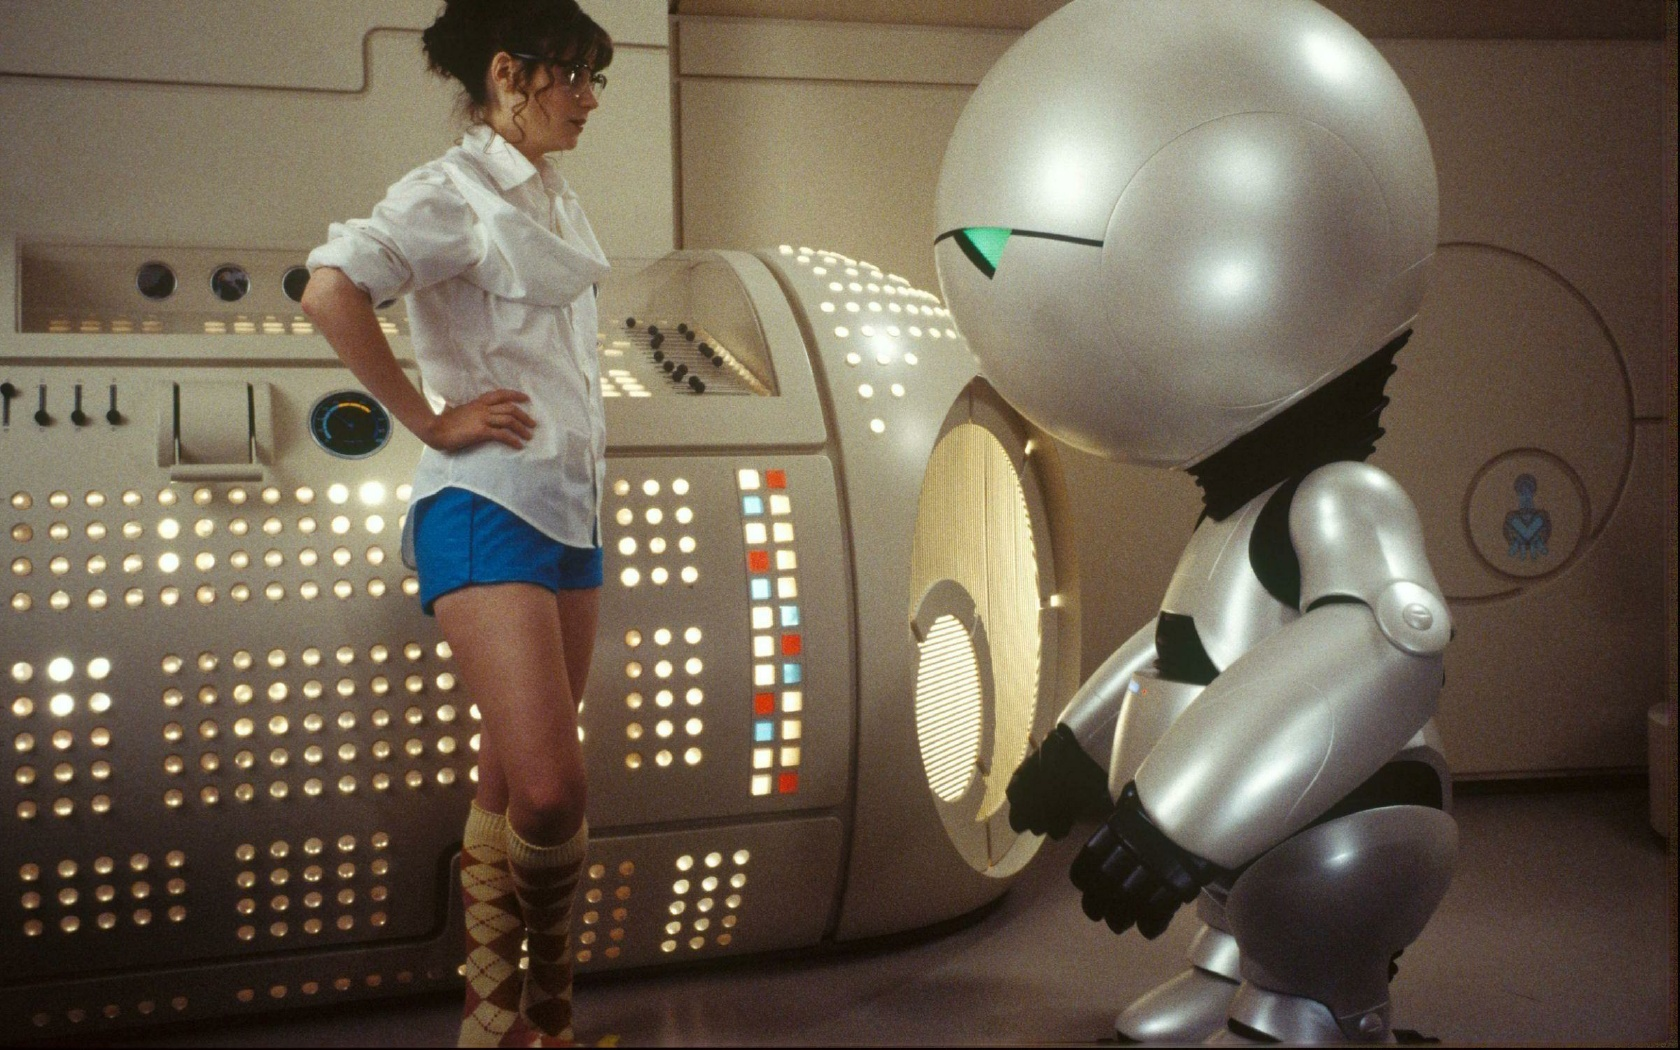 Robots zooey deschanel The HD Wallpaper